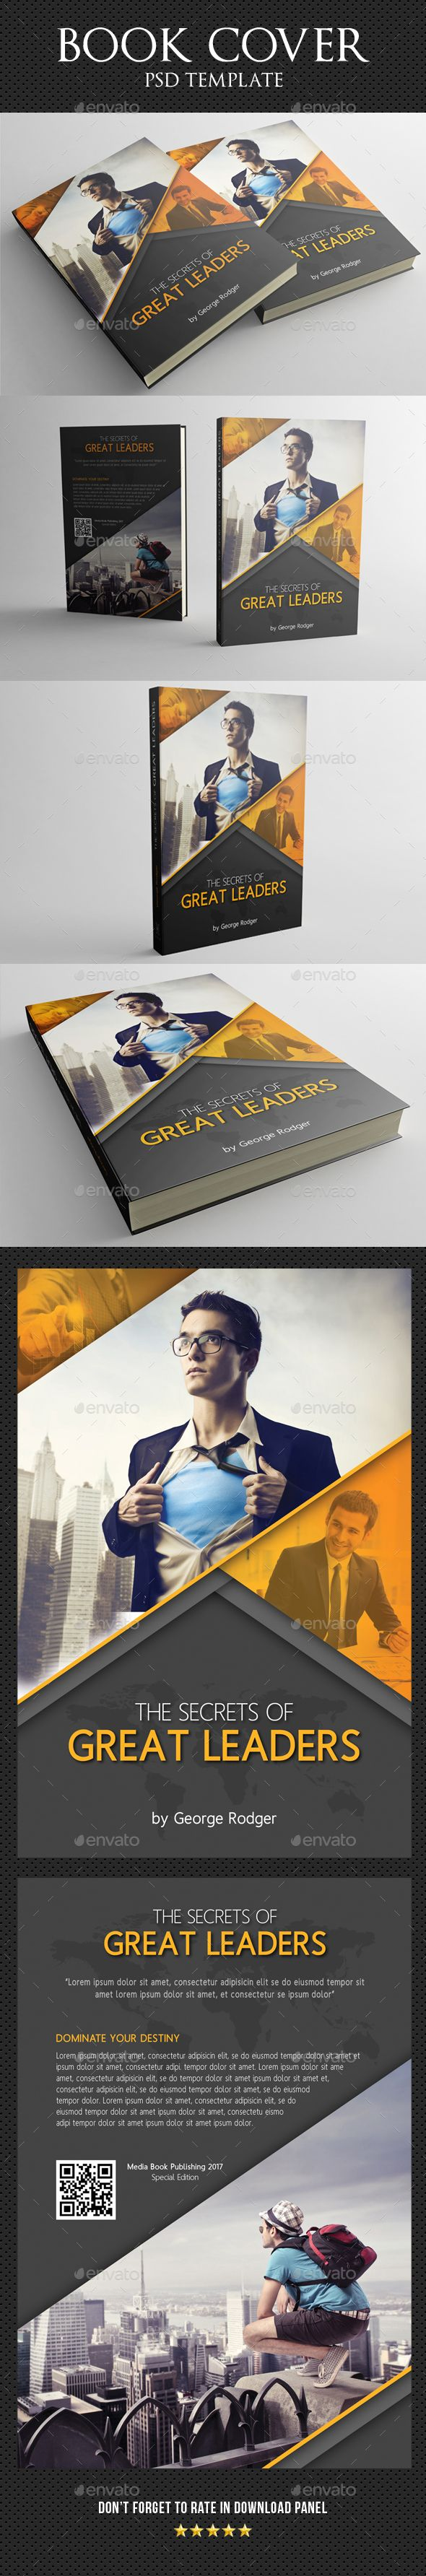 Book Cover Template 15 — Photoshop PSD #elegant #story • Available here → https://graphicriver.net/item/book-cover-template-15/18010668?ref=pxcr